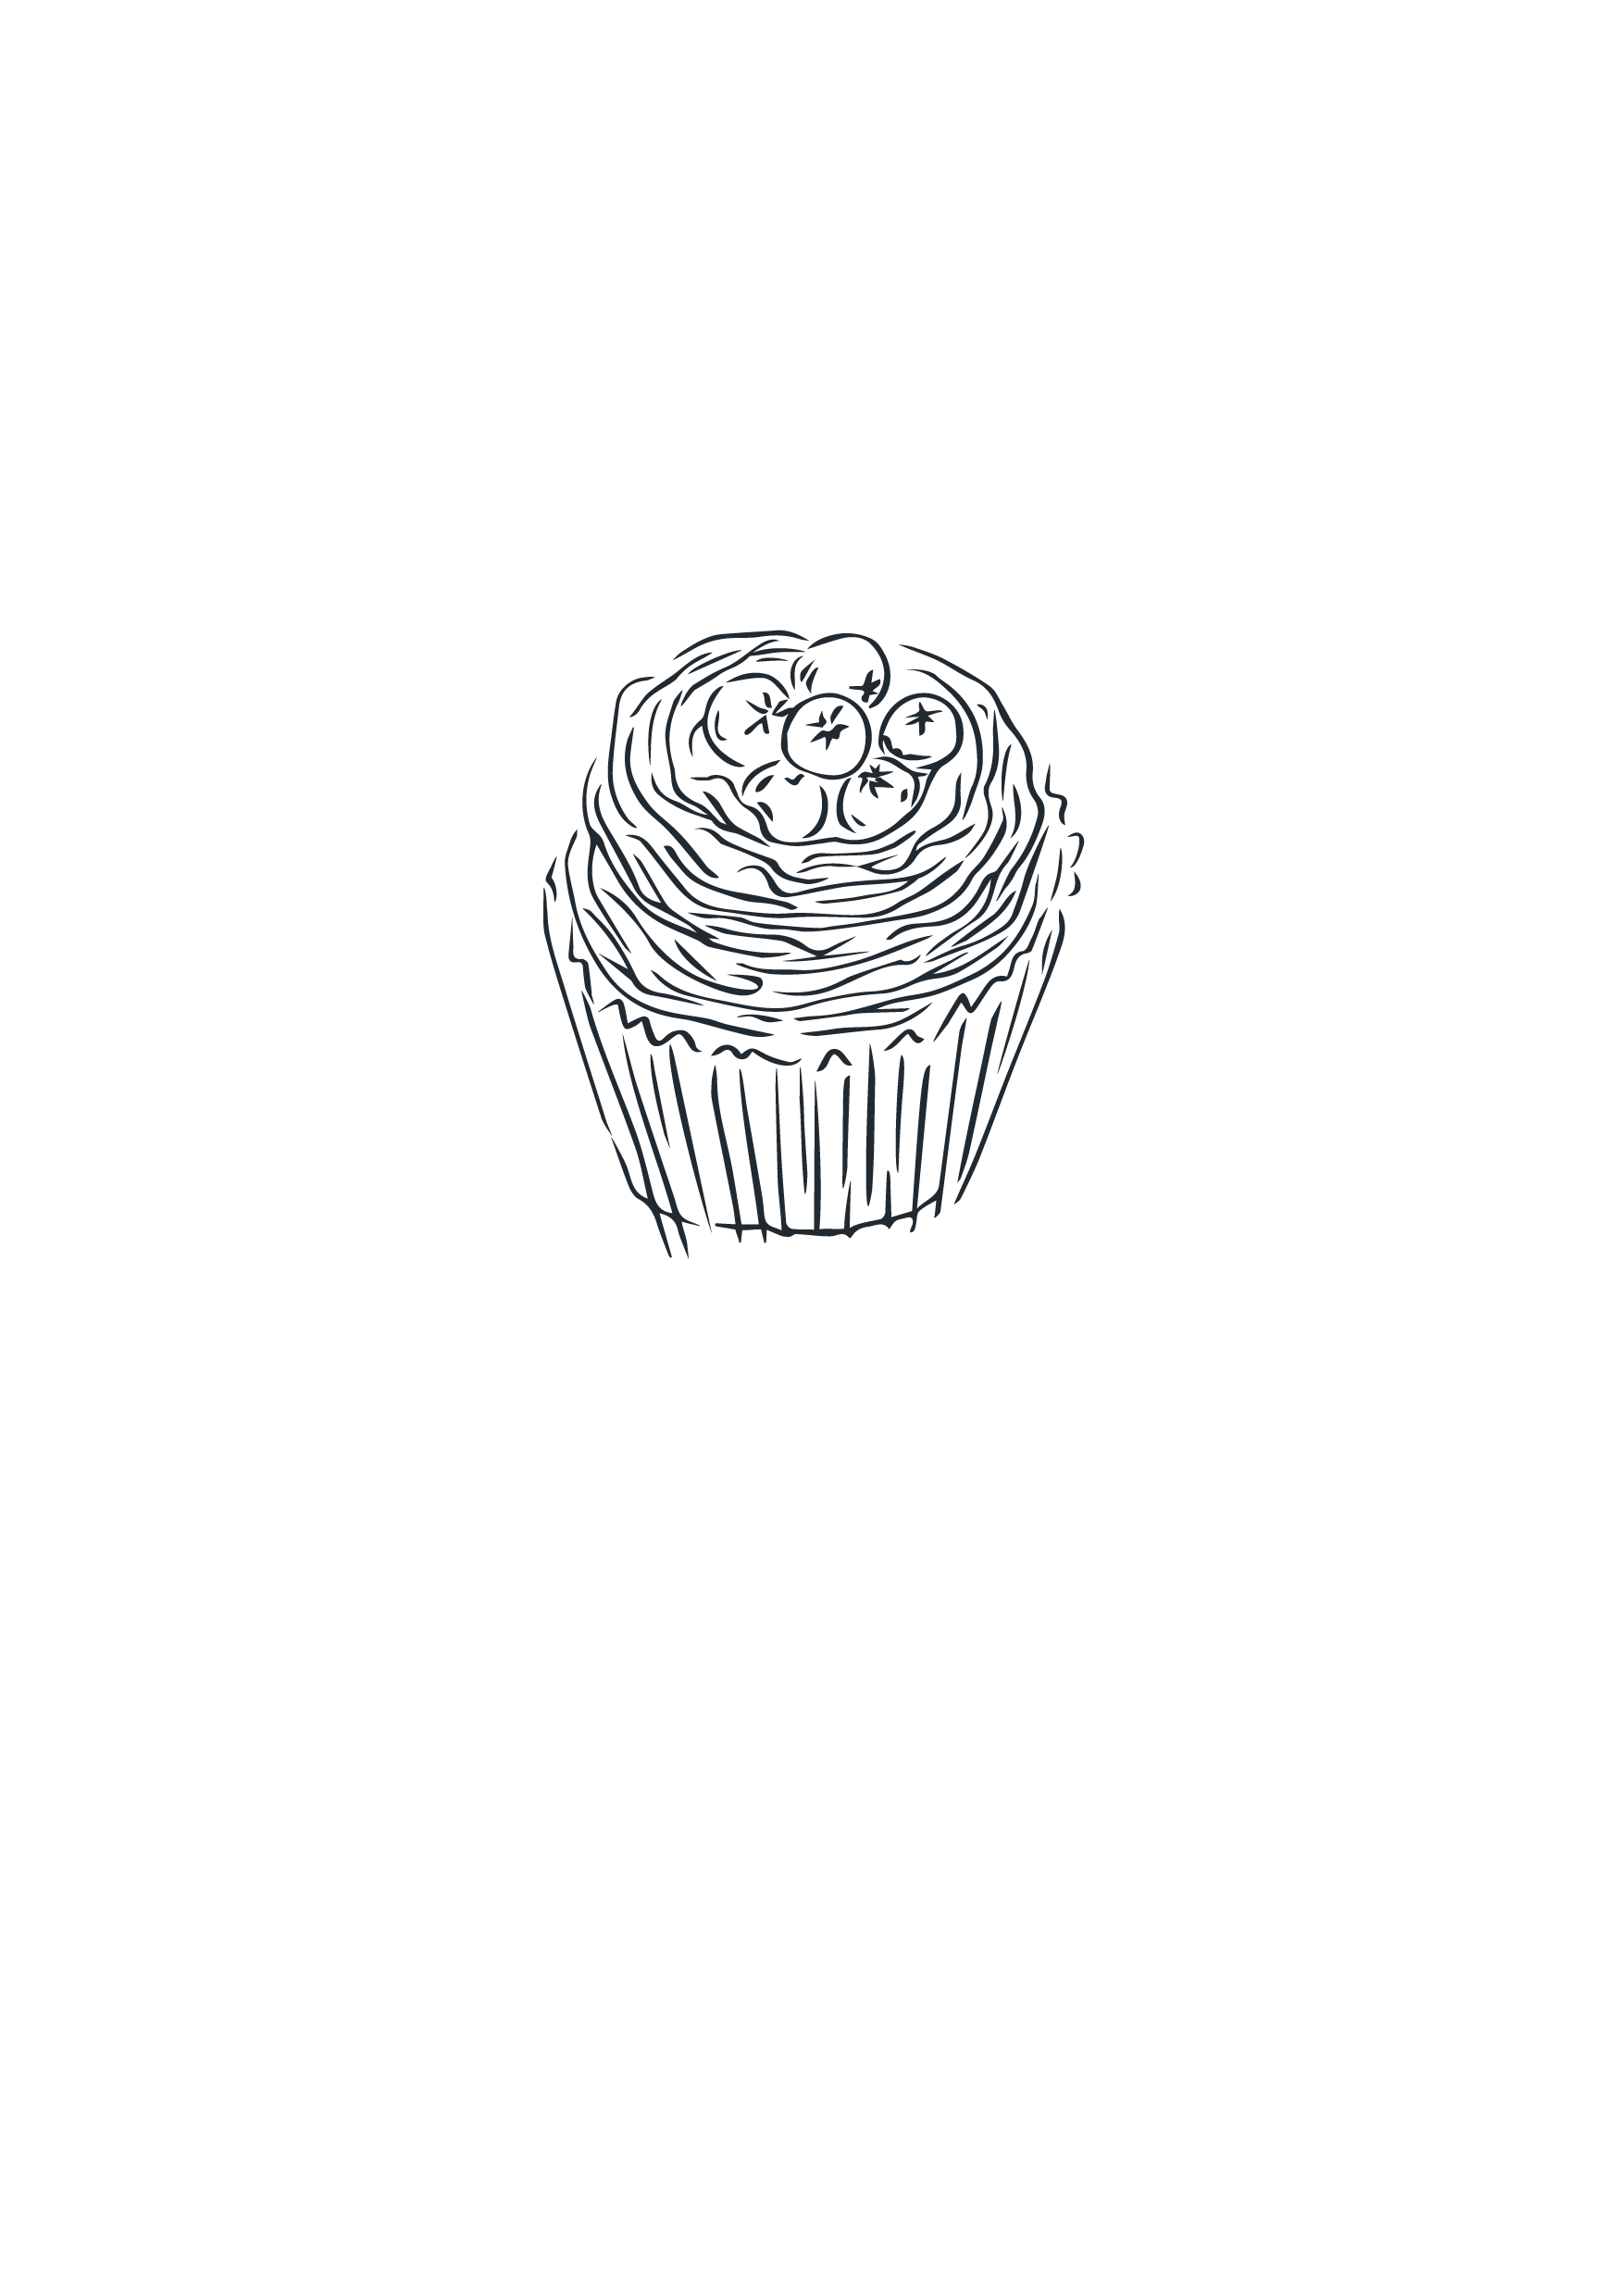 Pophams Bakery_Illustrations_A5_Final-13.png